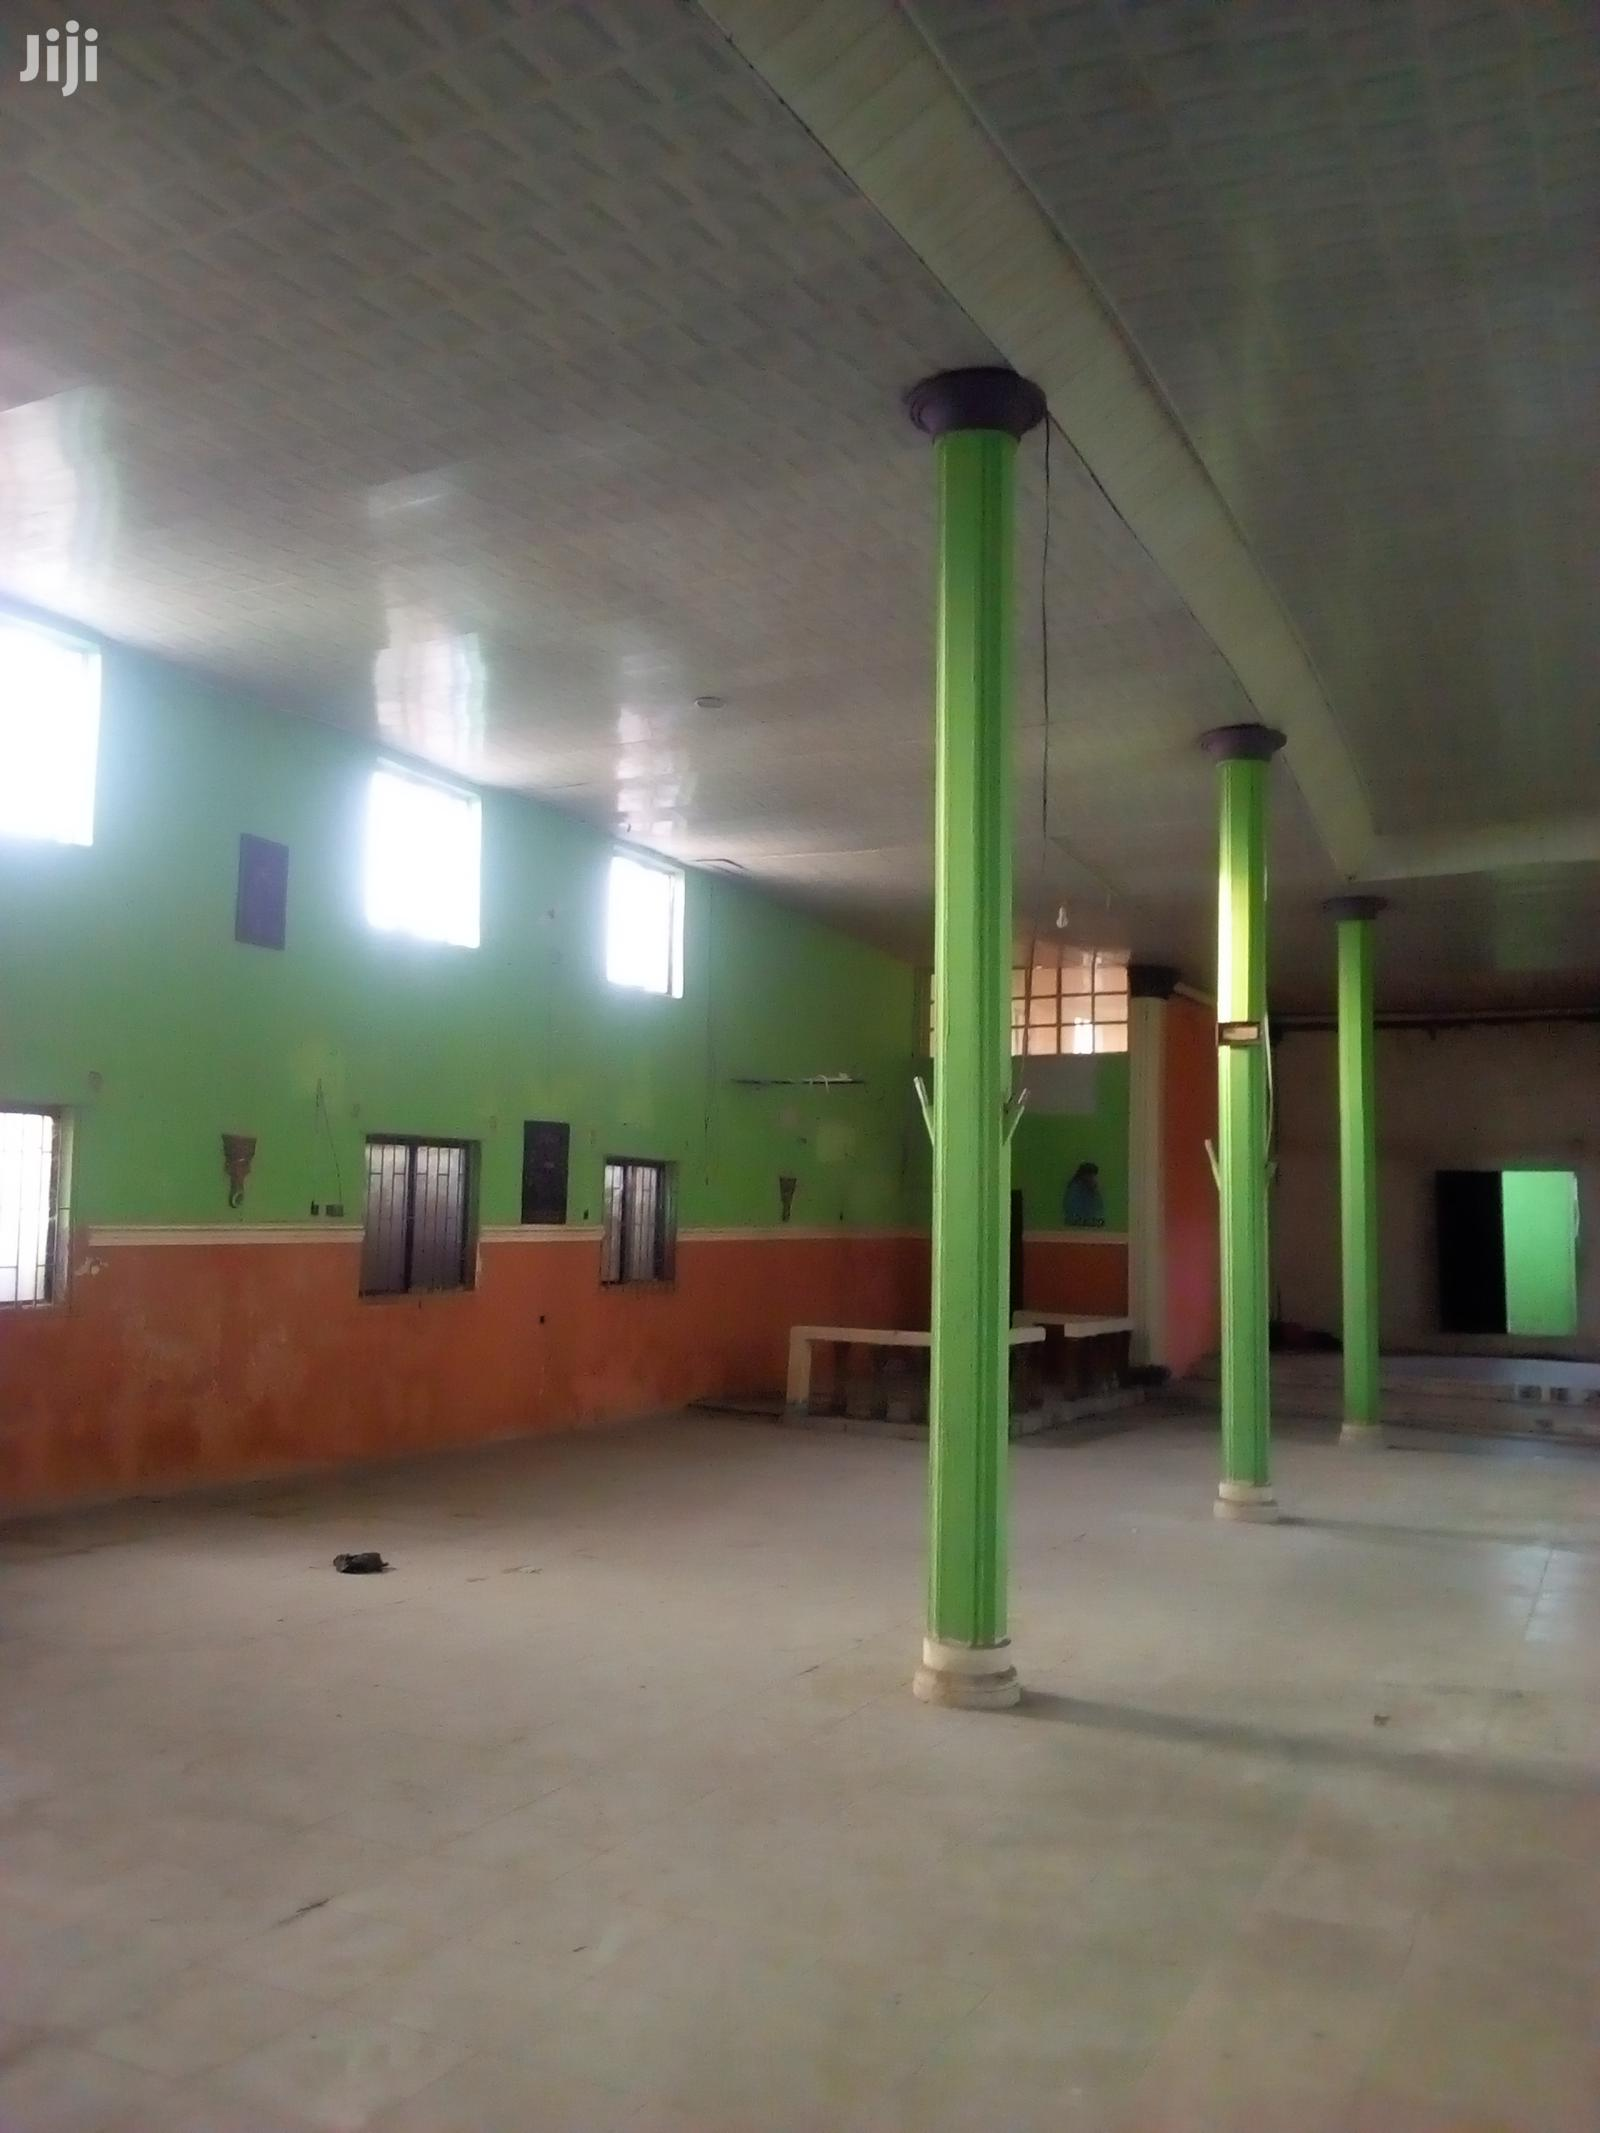 Church, Warehouse, Factory for Sale at Afromedia Okokomaiko Ojo | Commercial Property For Sale for sale in Ojo, Lagos State, Nigeria